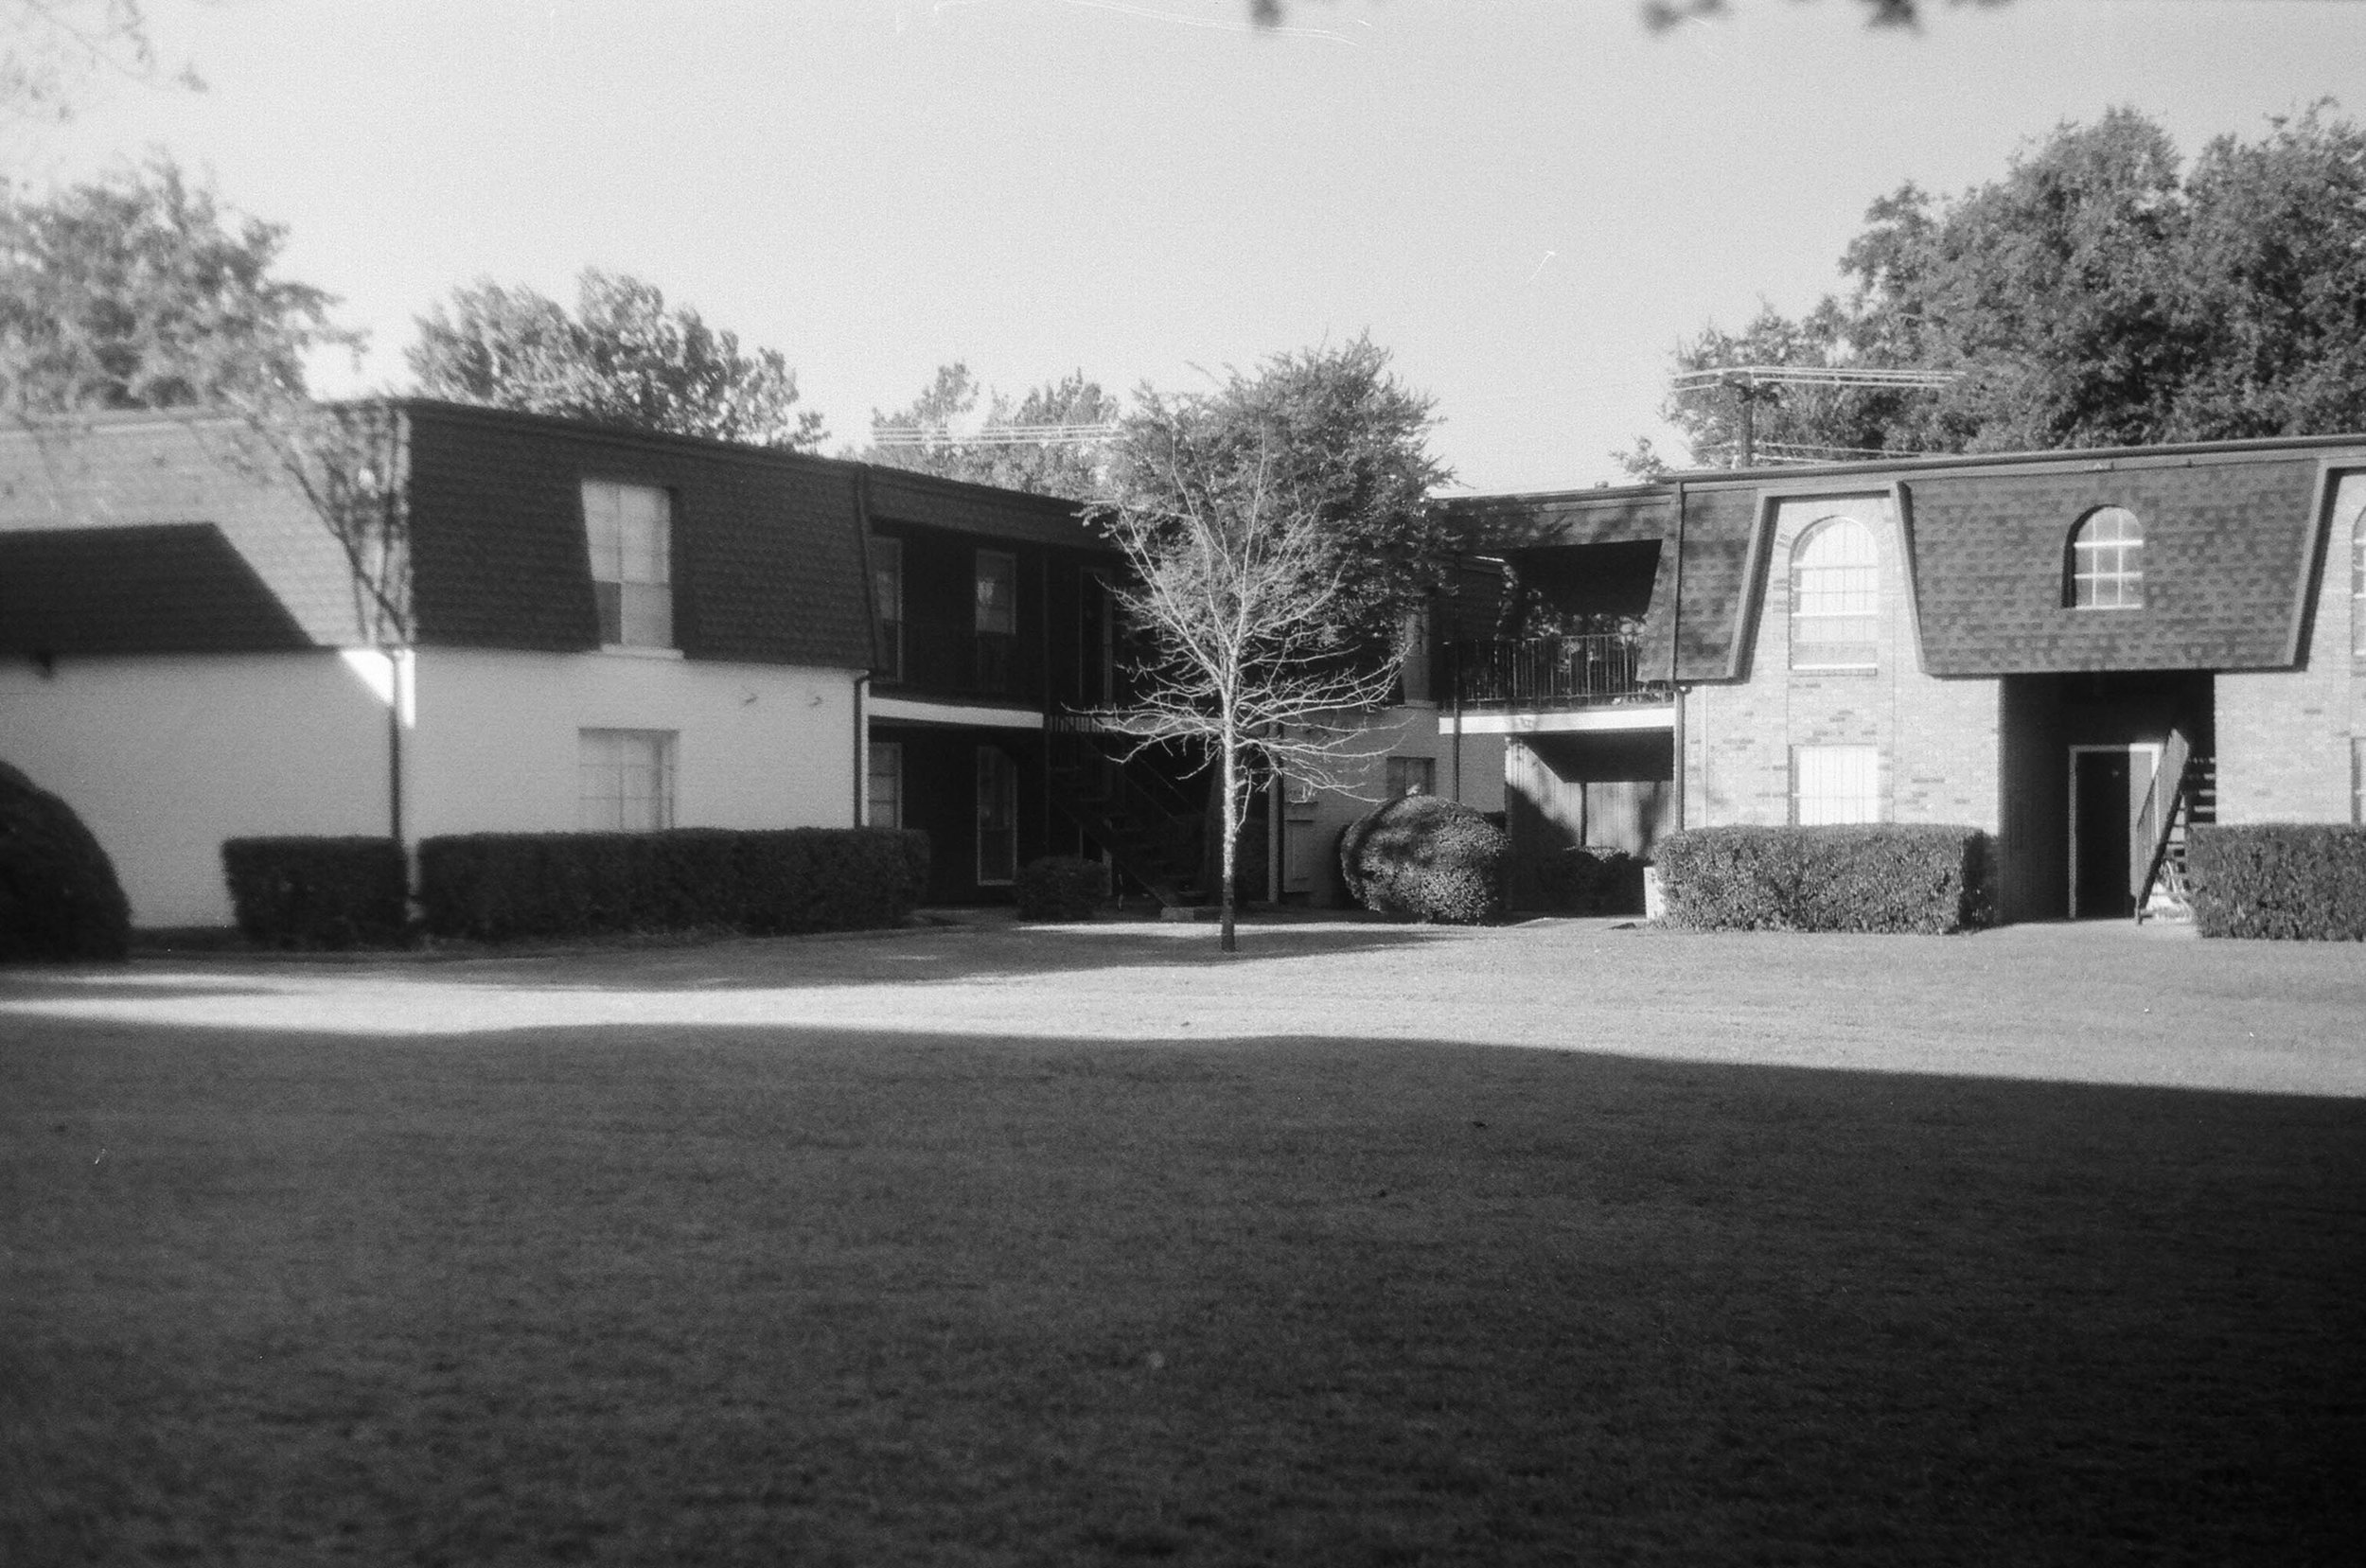 Home - this was the courtyard where our 1st apt was.1980's Zorki 4 | Ilford HP5